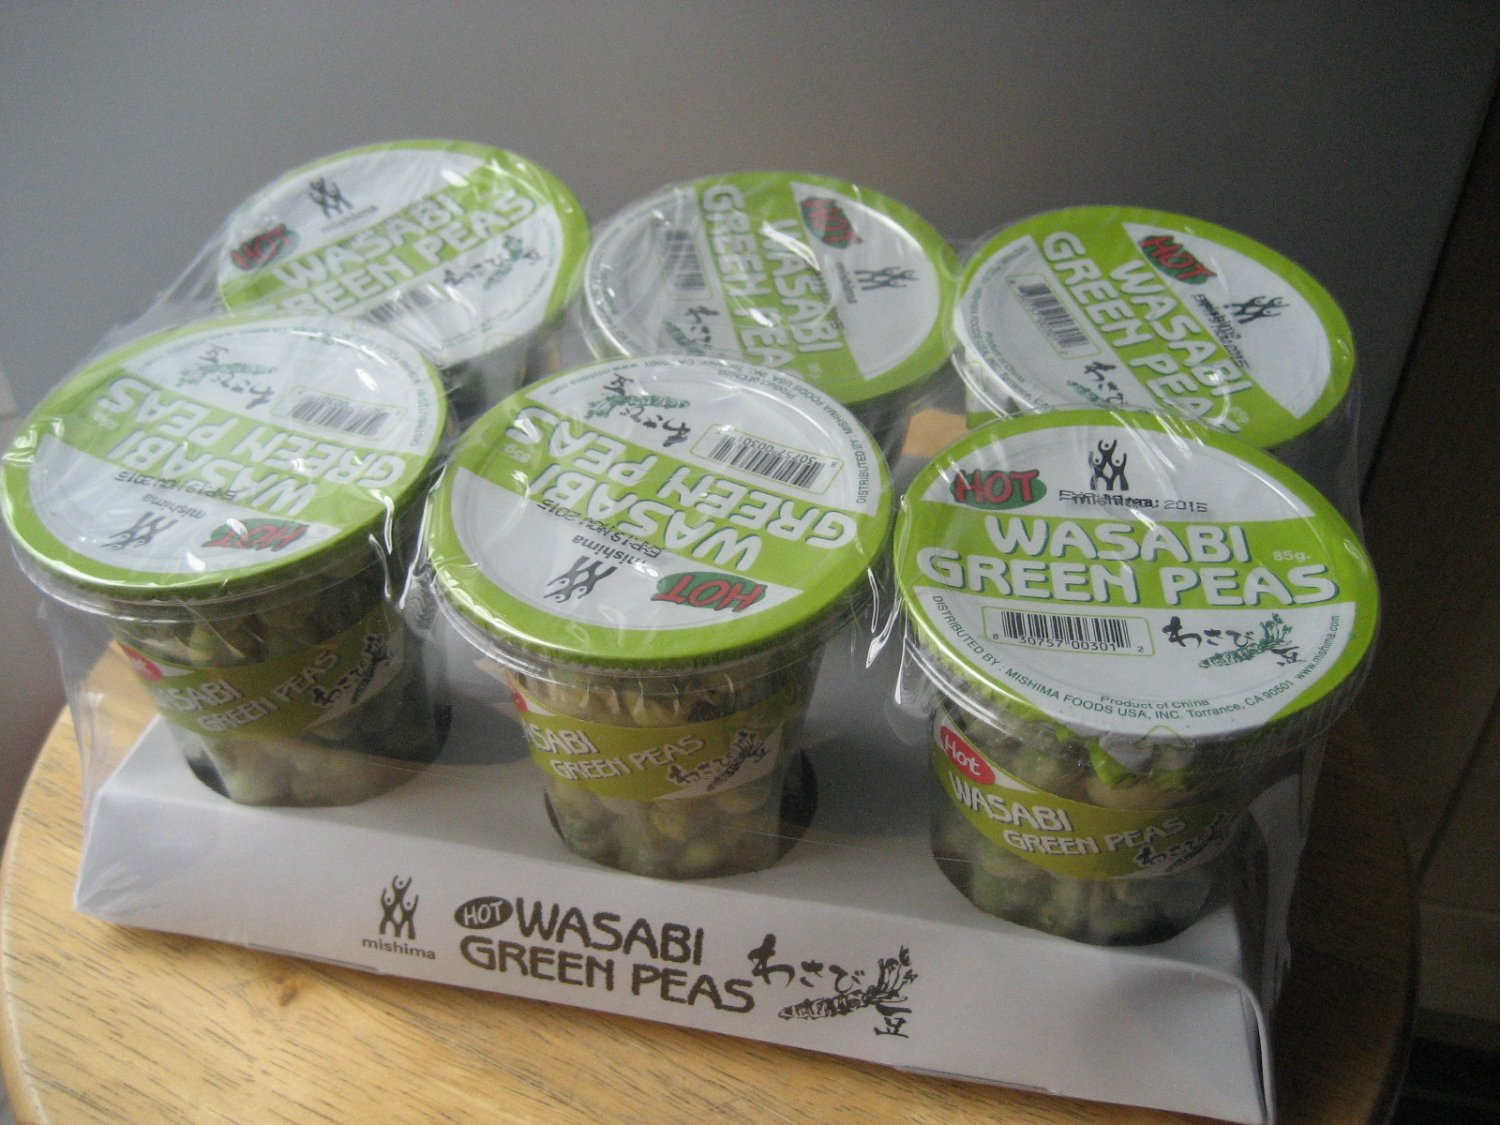 Japanese Snacks: Wasabi Peas by Mishima - 6 x 85g (Cups)